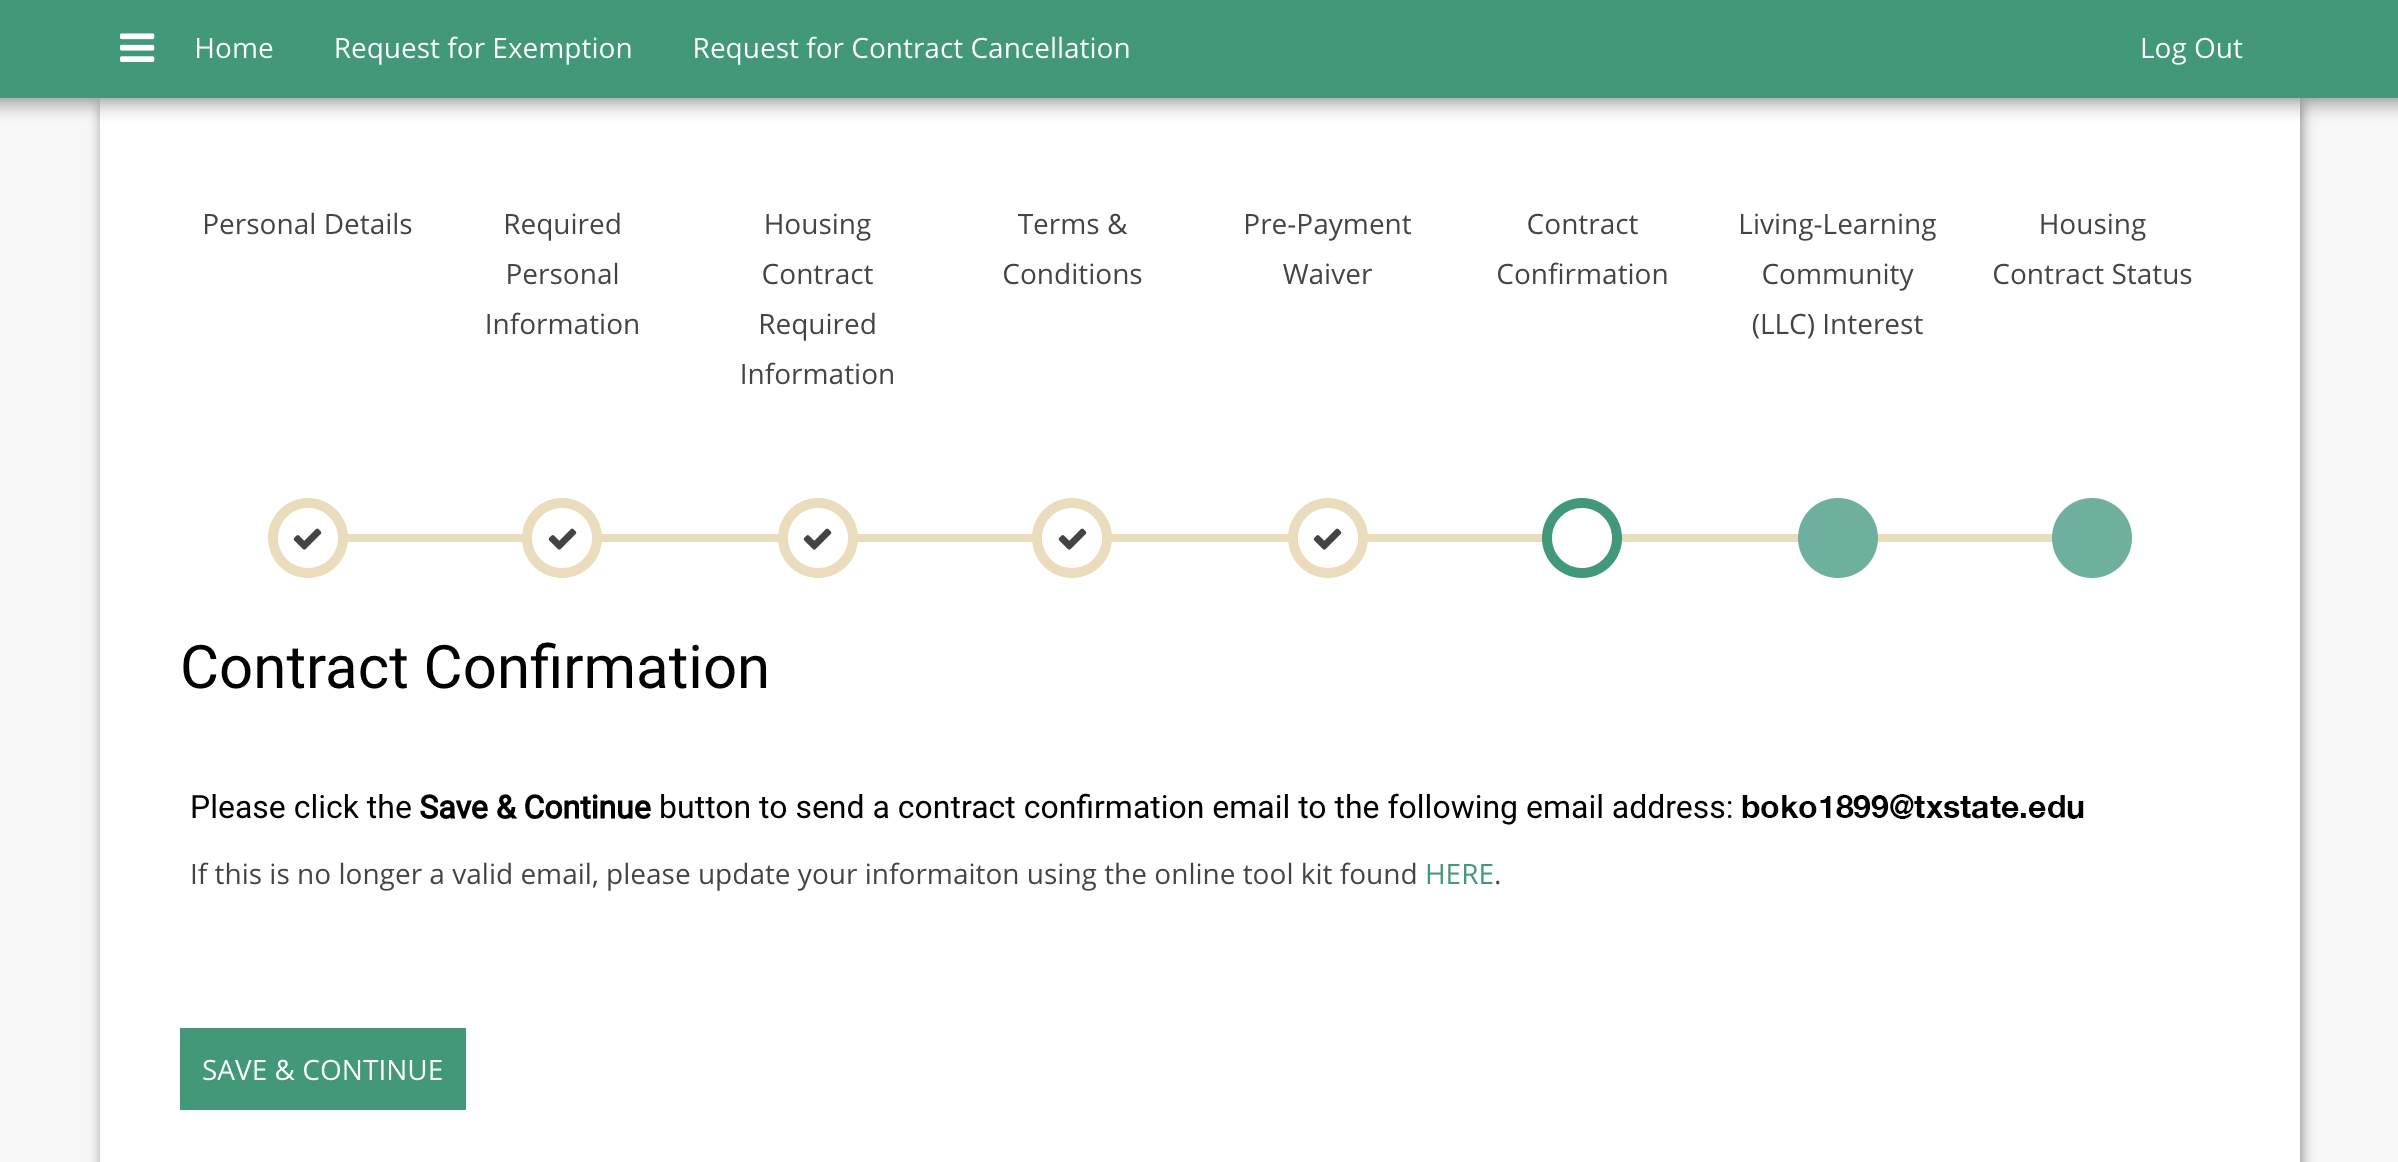 Screenshot of the Contract Confirmation page in the StarRez Housing Portal